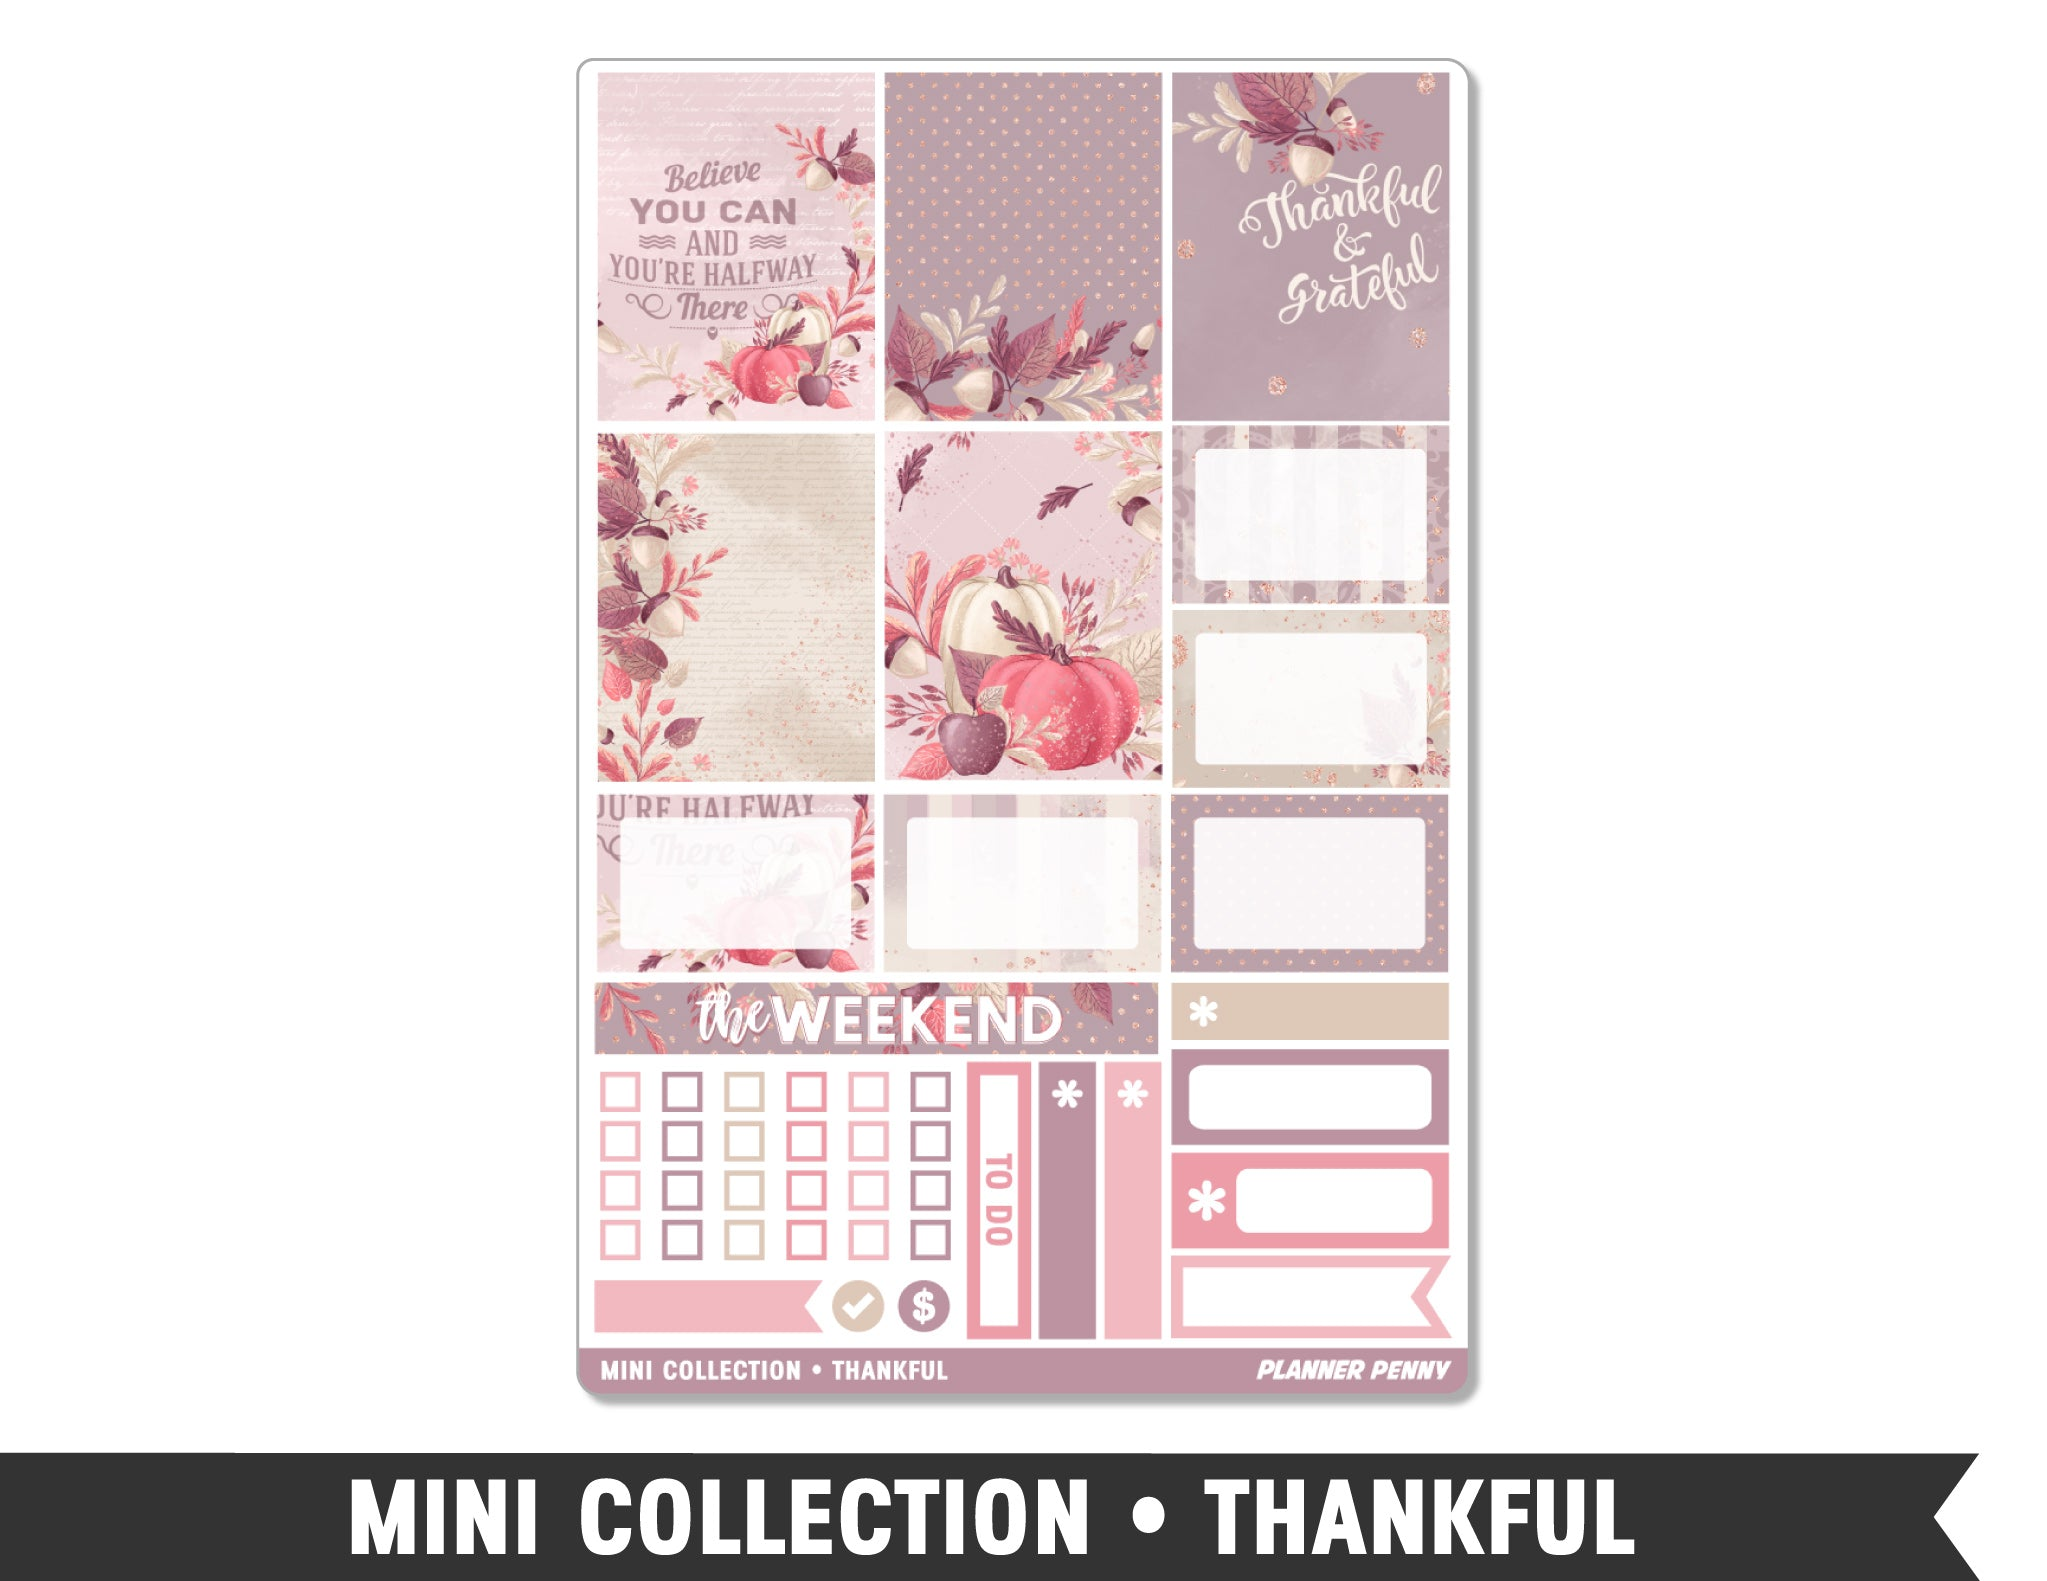 Mini Collection • Thankful • Weekly Spread Planner Stickers - Planner Penny